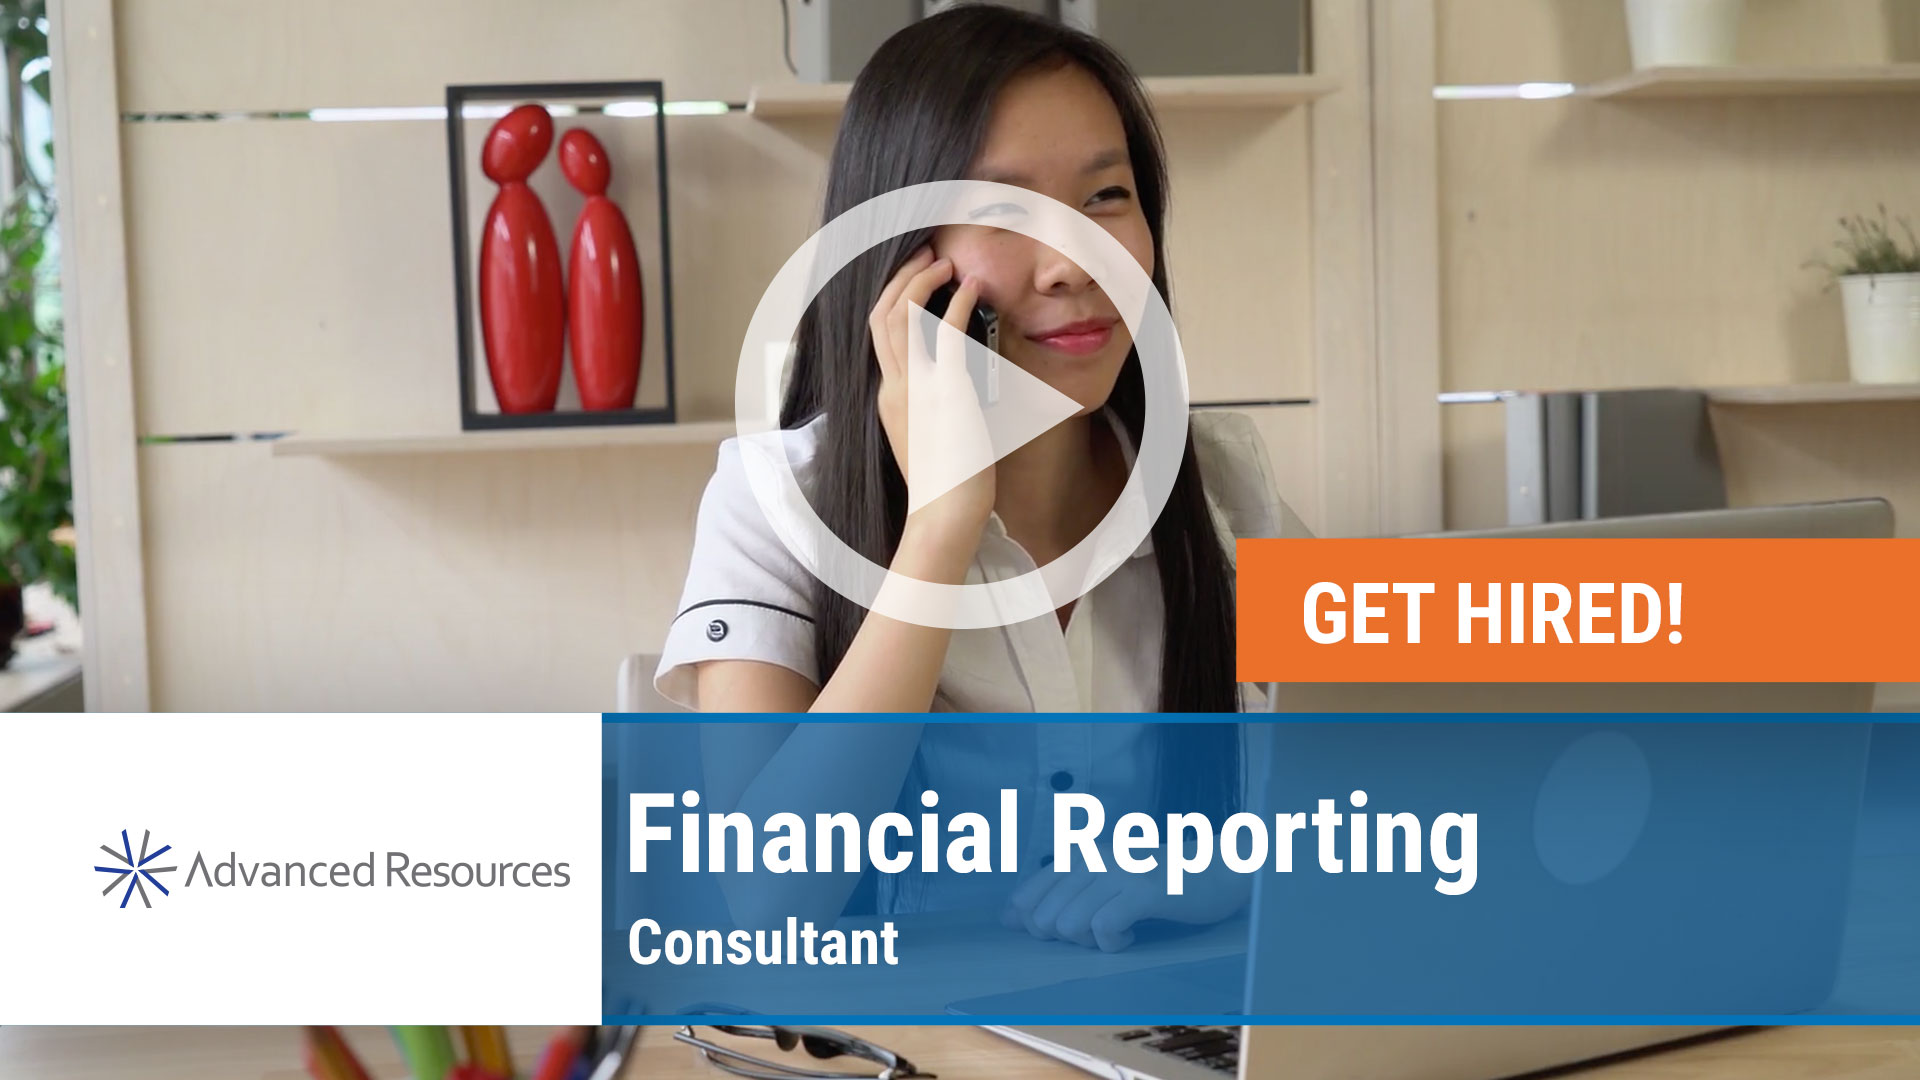 Watch our careers video for available job opening Financial Reporting Consultant in Chicago, Illinois